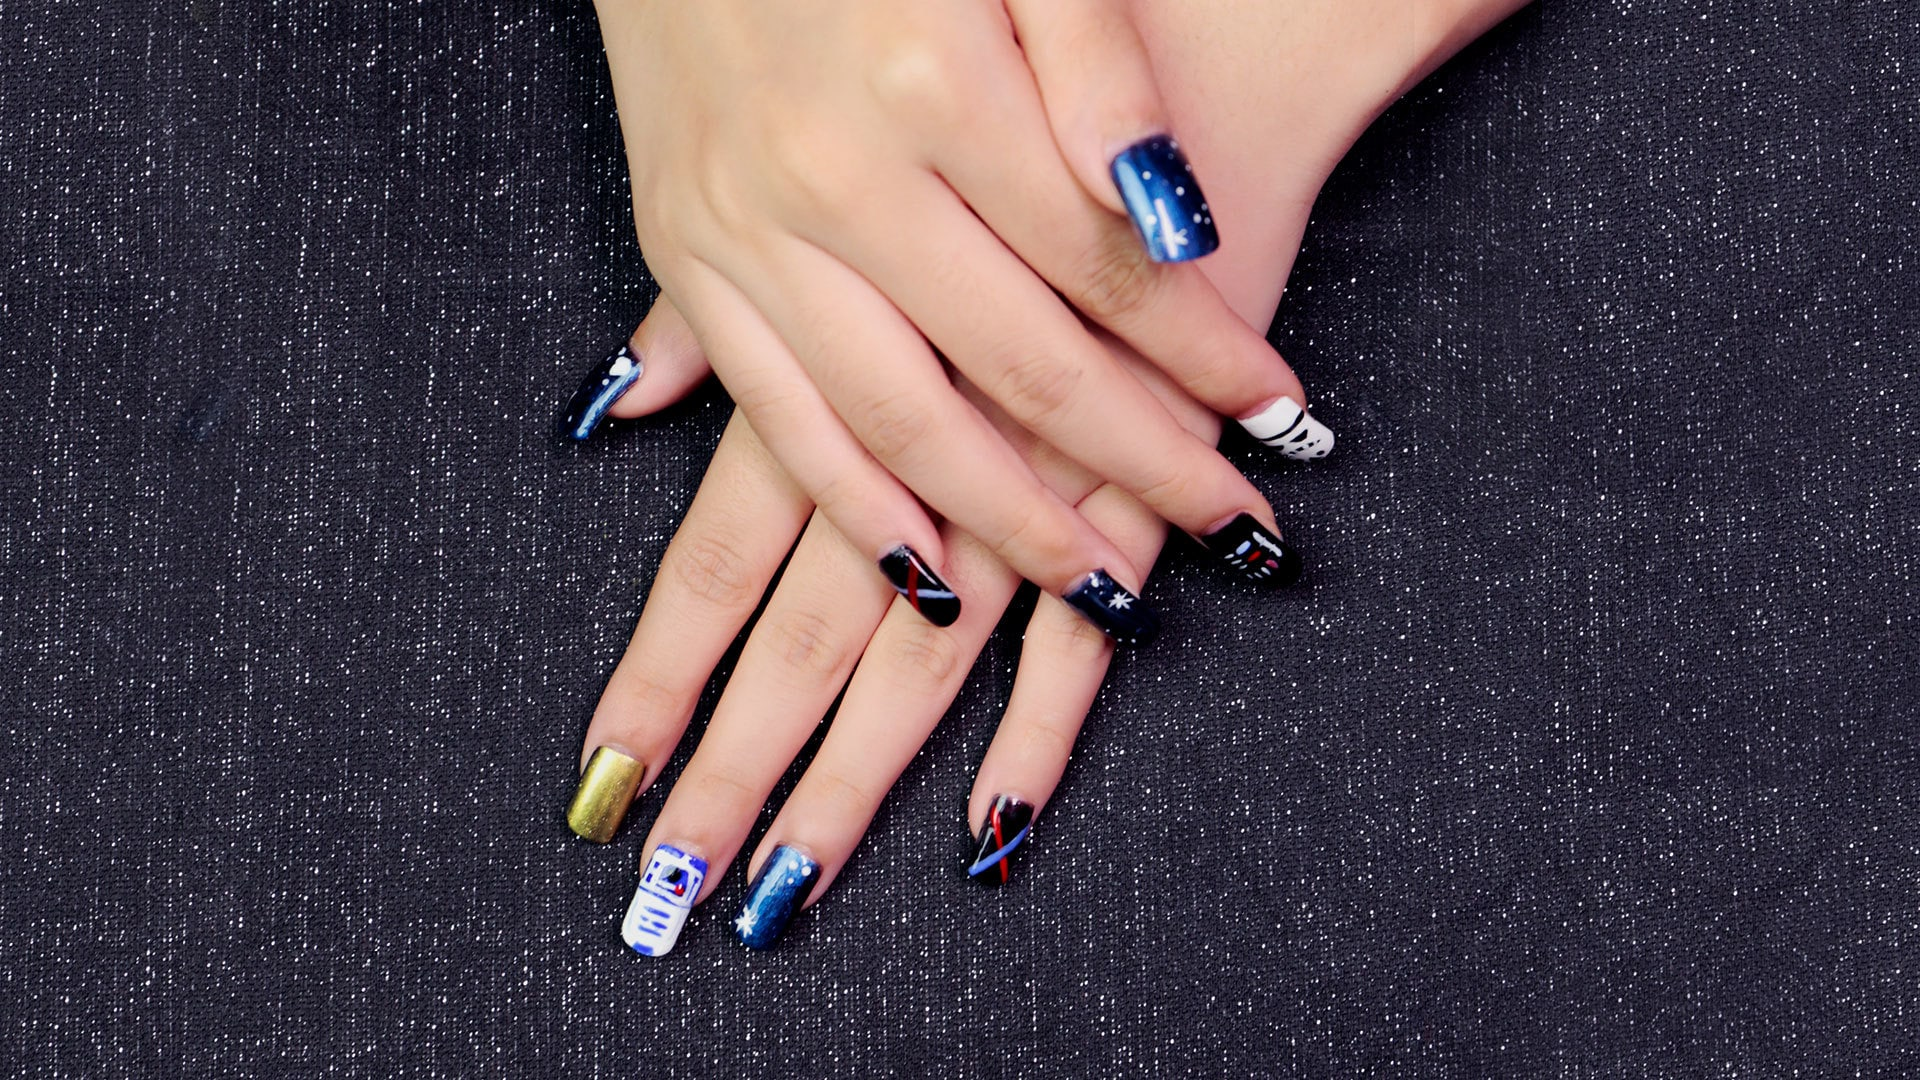 This Star Wars Nail Art Is Fit For A Galaxy Far, Far Away